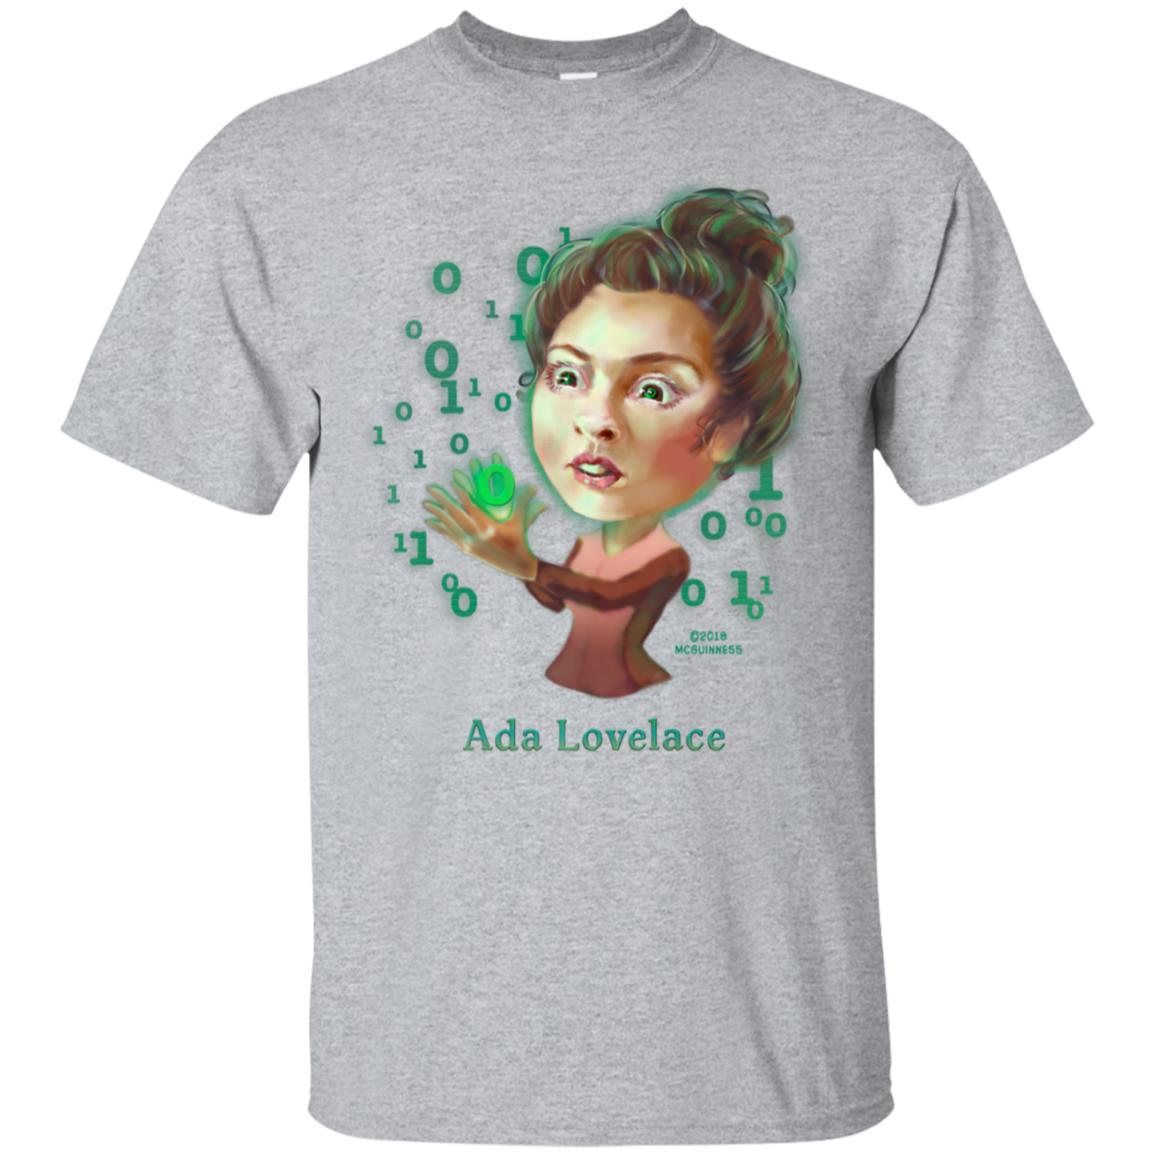 Ada Lovelace caricature 99promocode